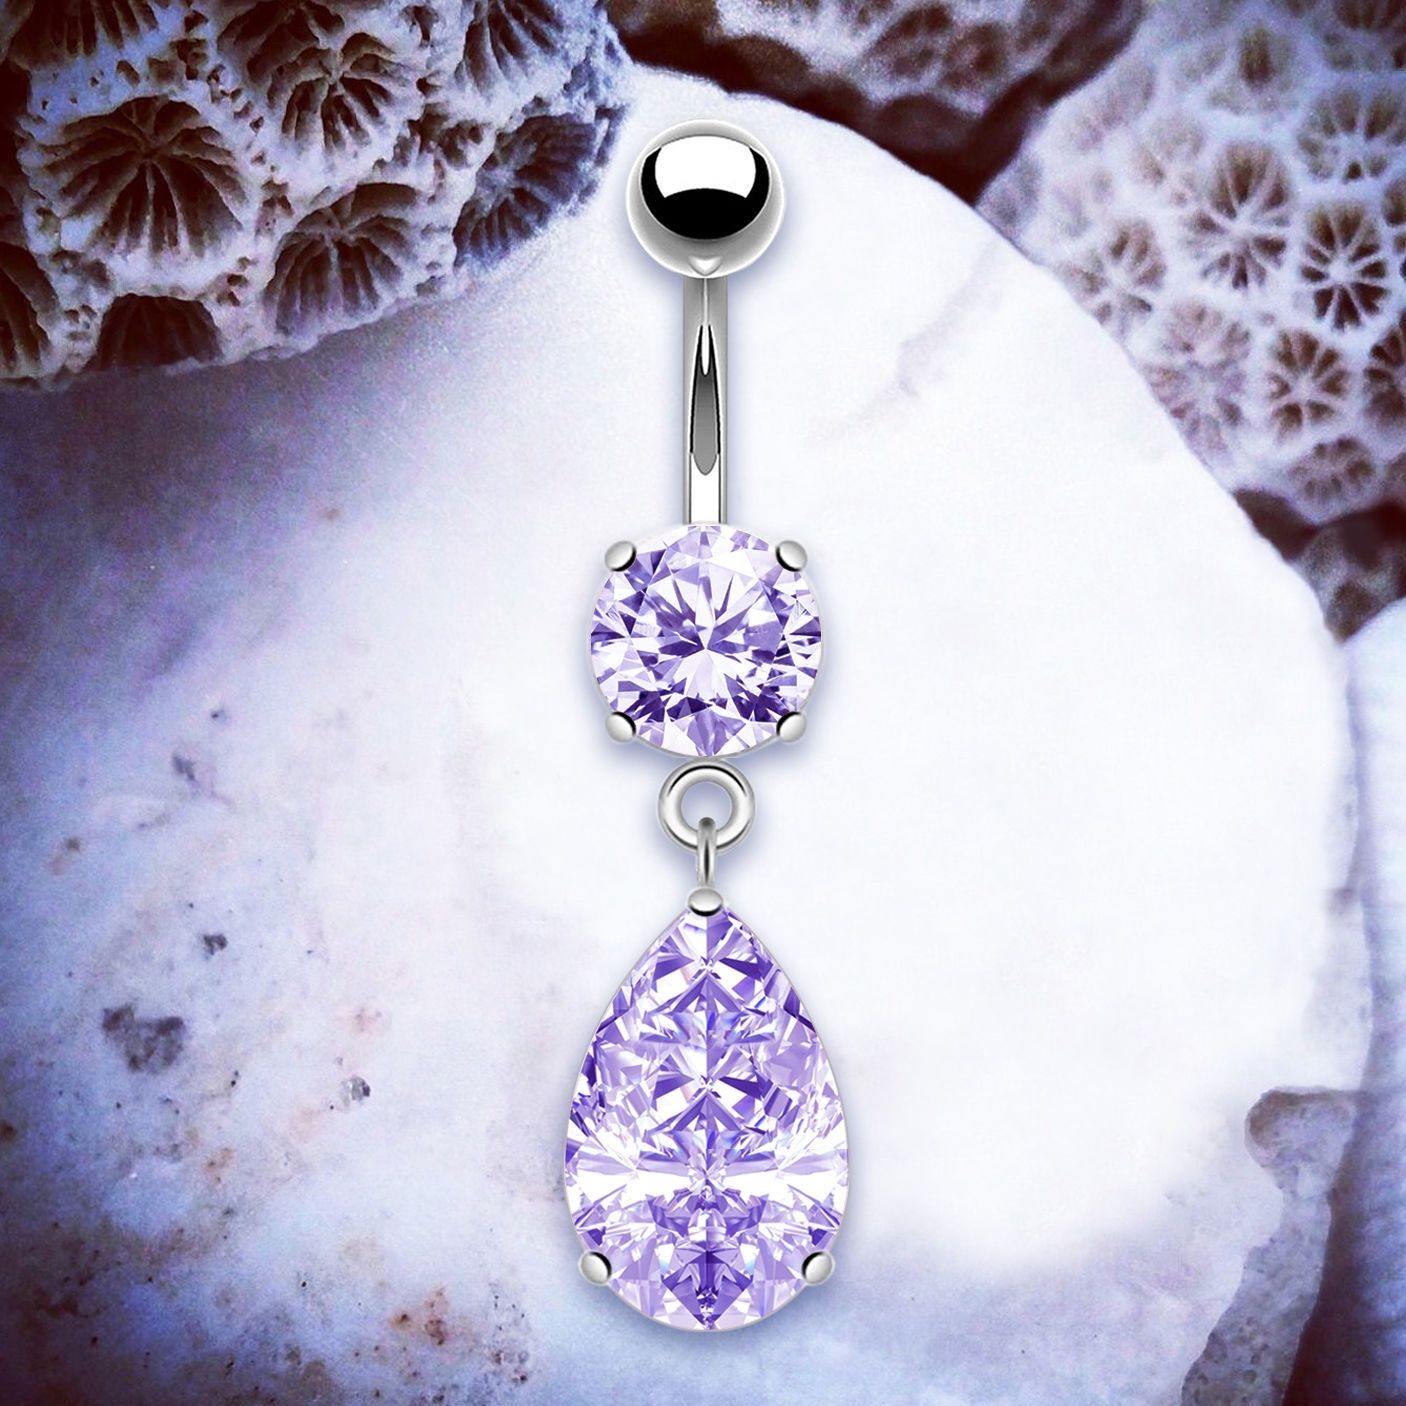 Details About Victoria Purple Belly Button Piercings Silver Belly Jewellery Dangle Navel Rings